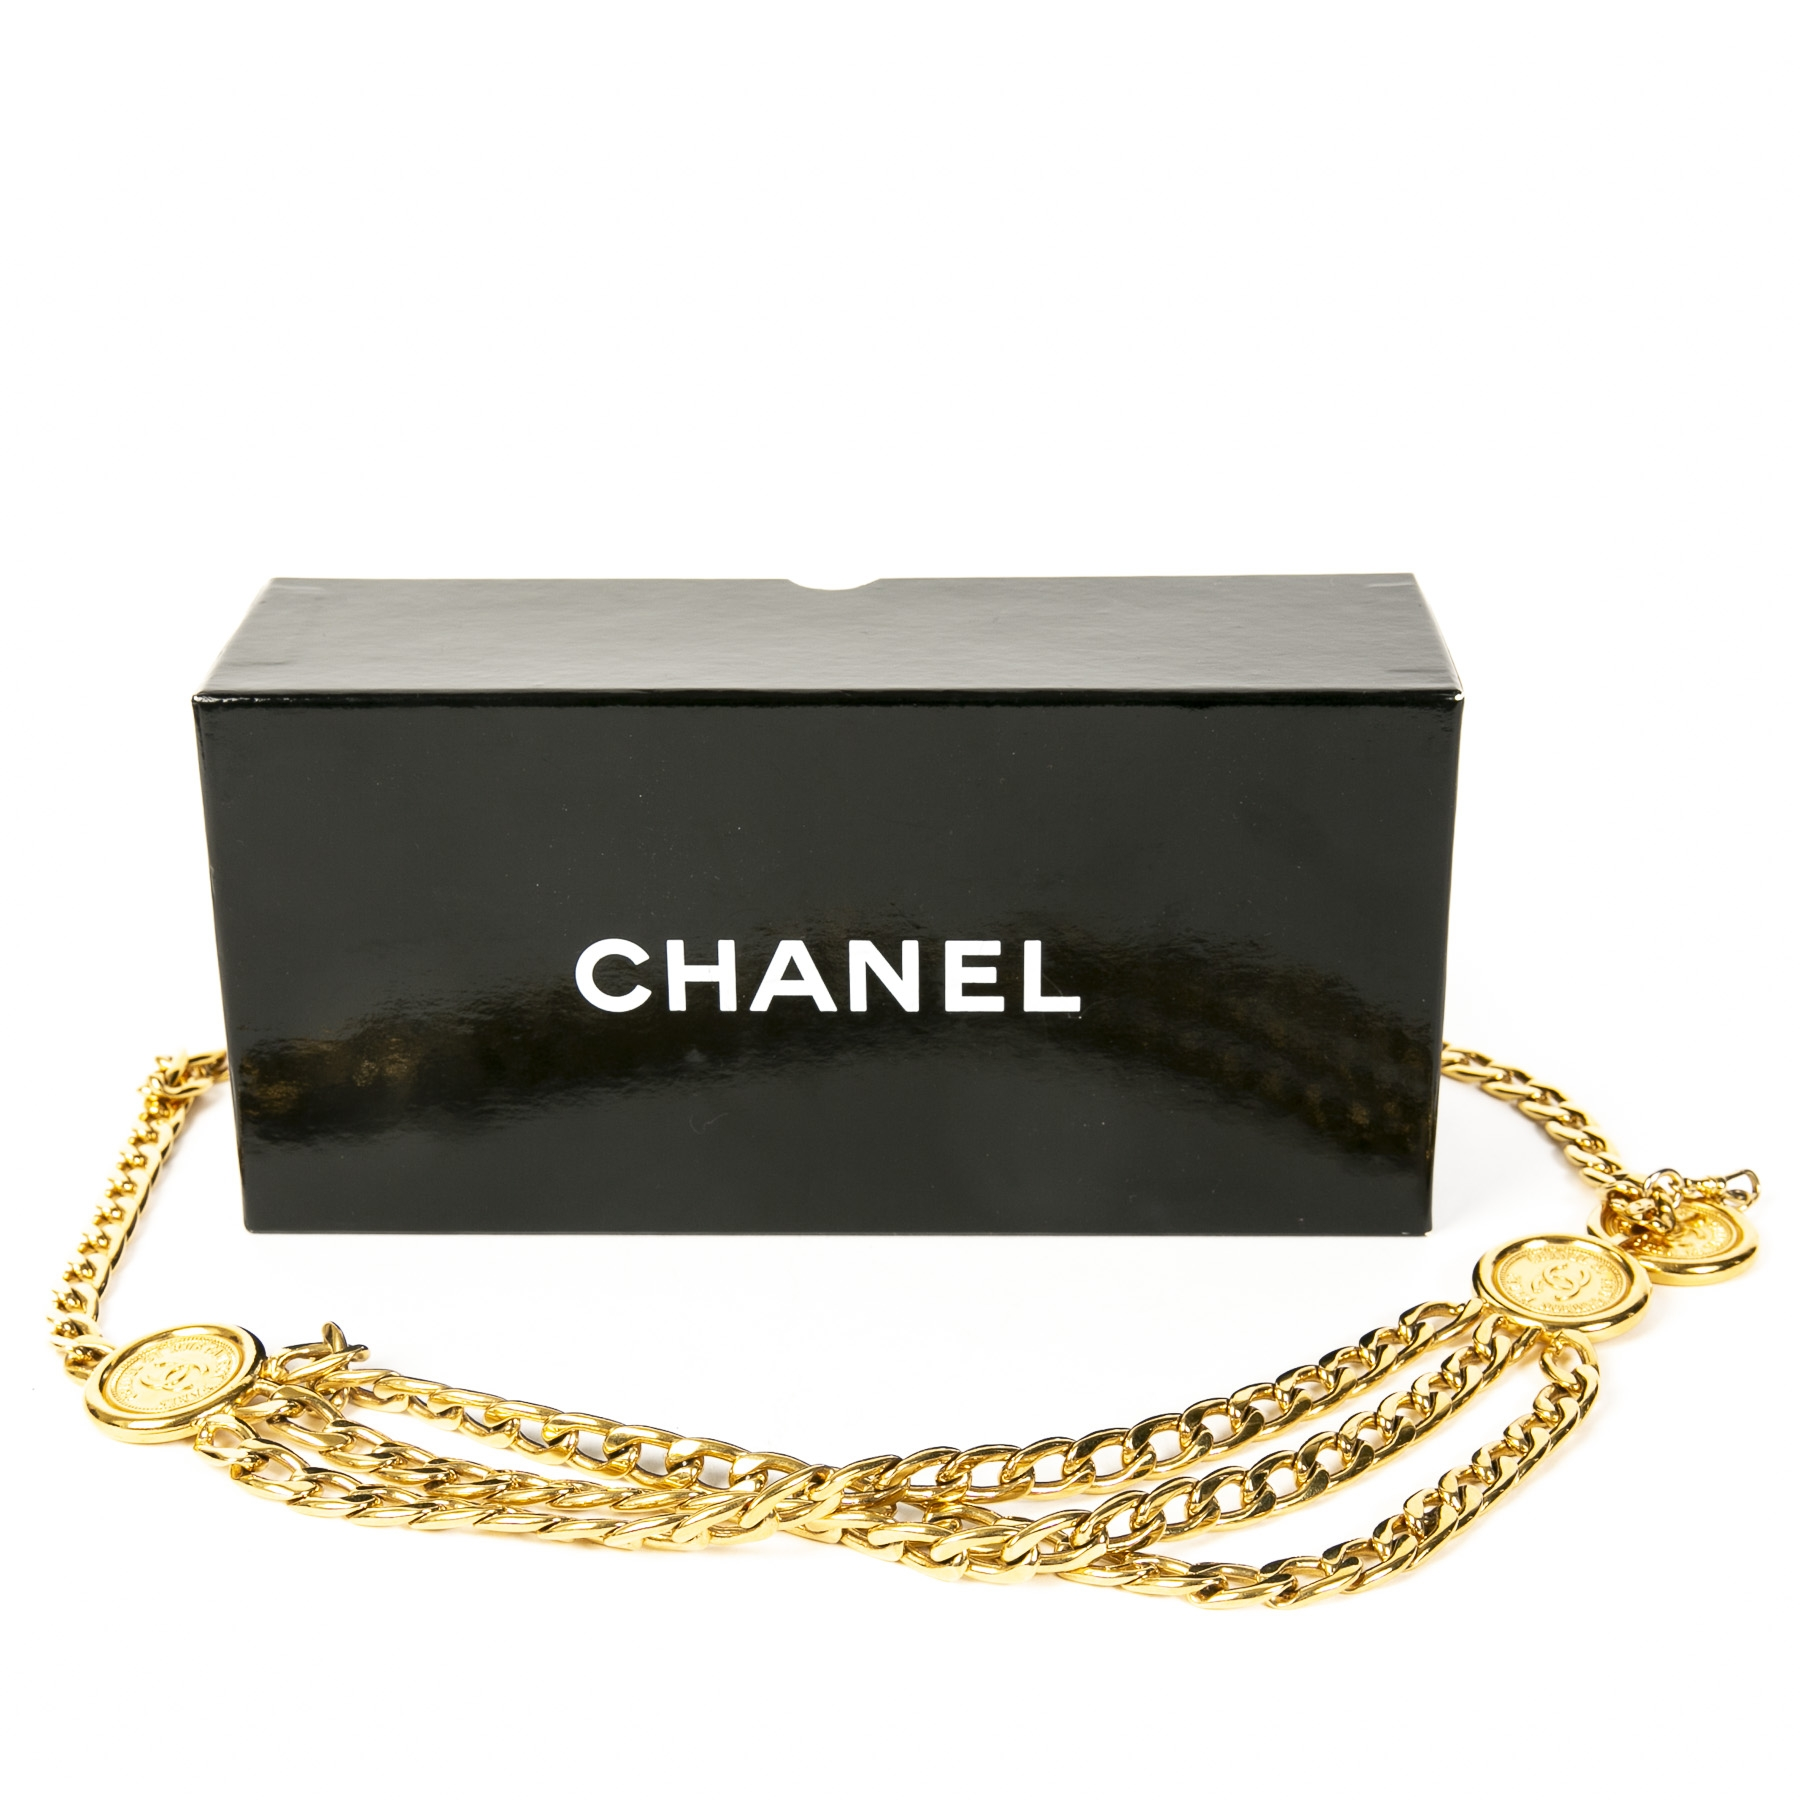 Authentieke tweedehands vintage Chanel Gold Triple Chain Belt koop online webshop LabelLOV